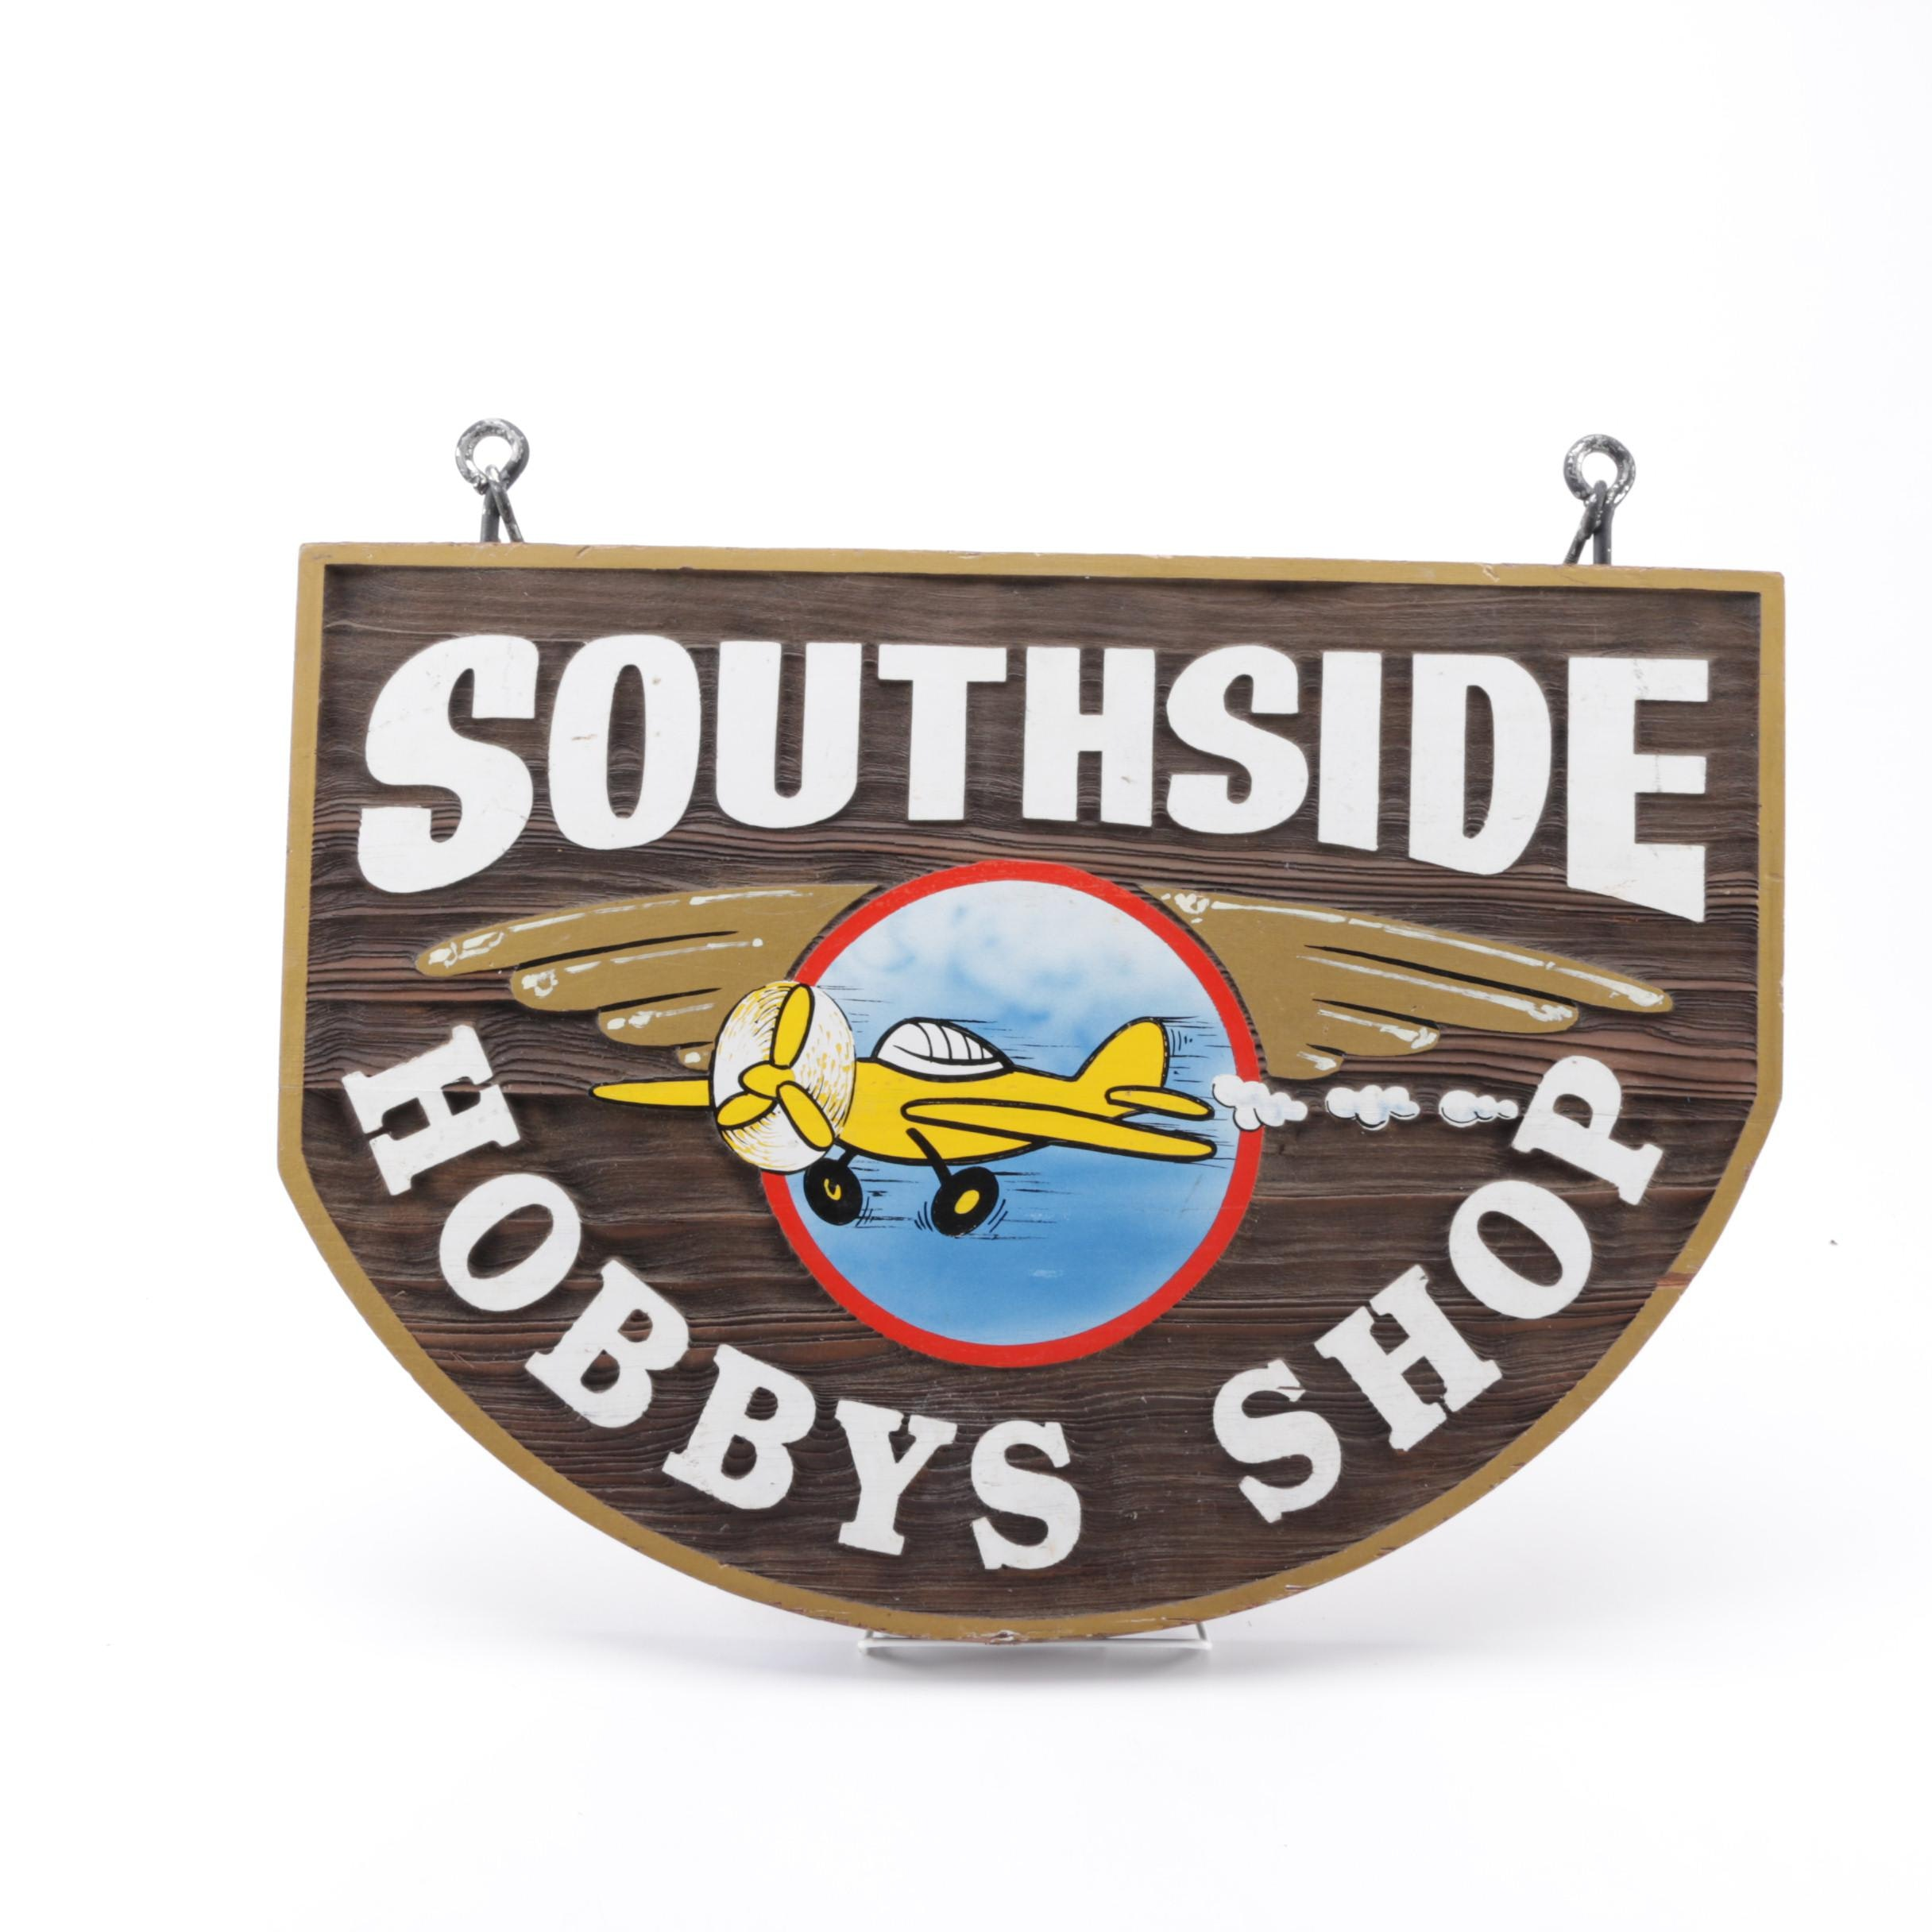 """Southside Hobbys Shop"" Double Sided Wooden Advertising Sign"